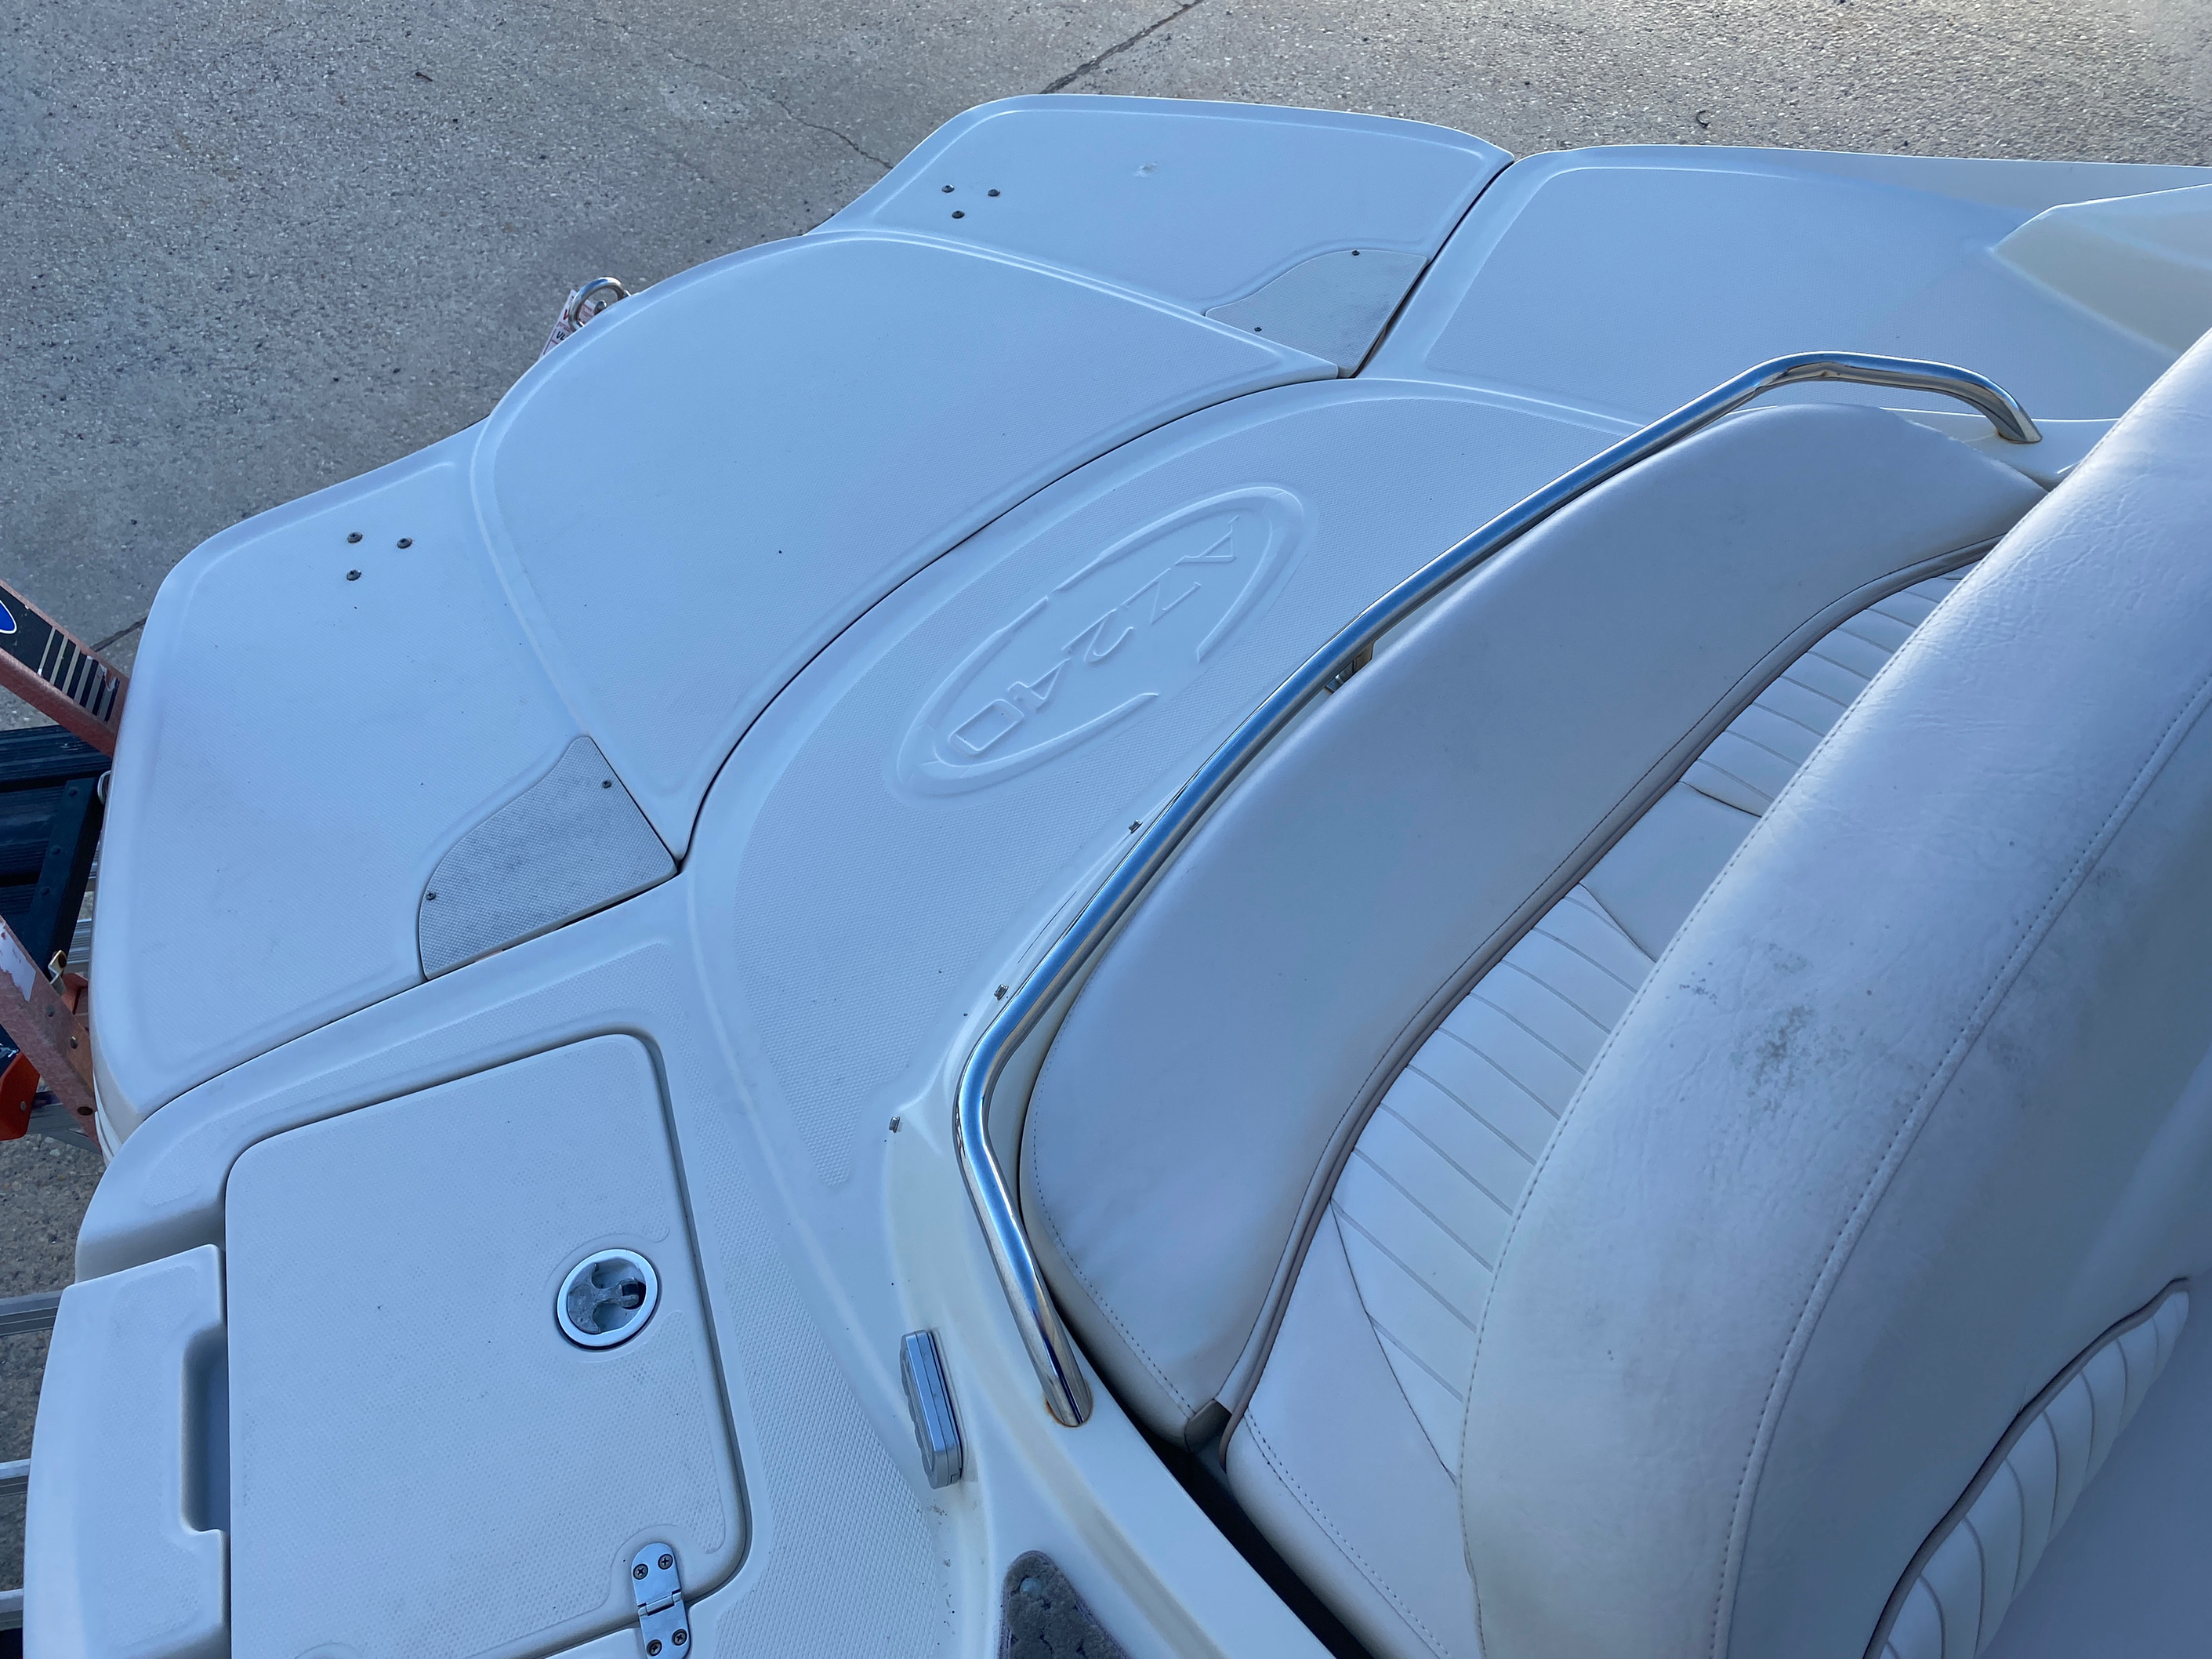 2008 Azure boat for sale, model of the boat is AZ 240 & Image # 13 of 18